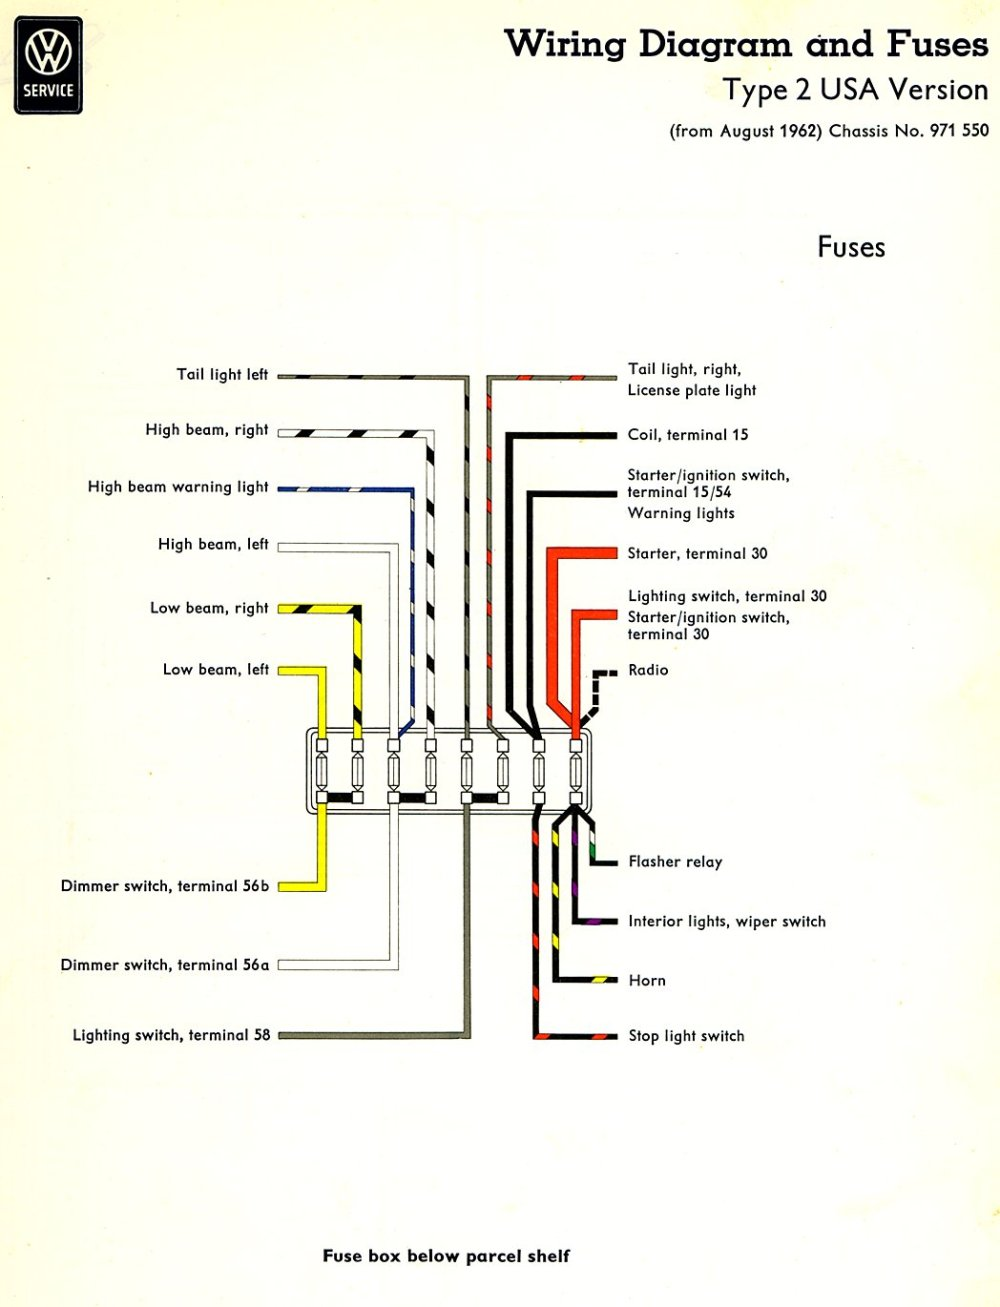 medium resolution of thesamba com type 2 wiring diagrams rh thesamba com 1972 vw super beetle fuse box diagram